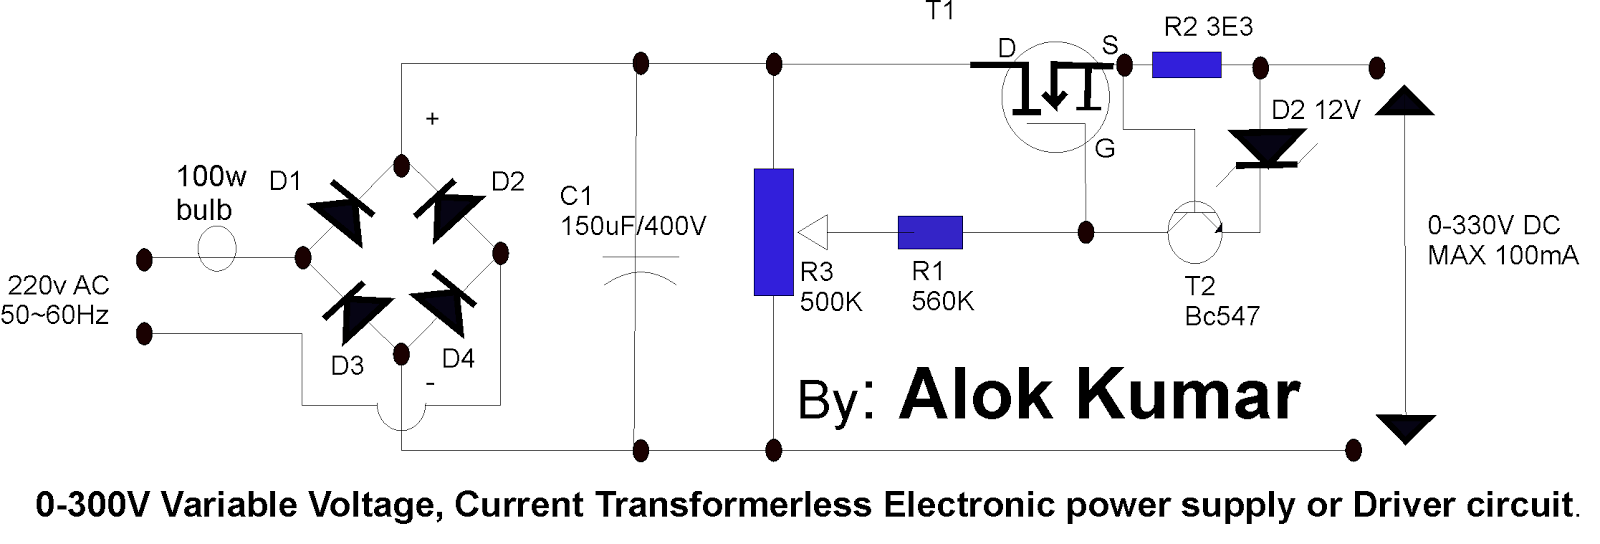 small resolution of electronic circuits transformerless power supply led drivers battery chargers solar circuits